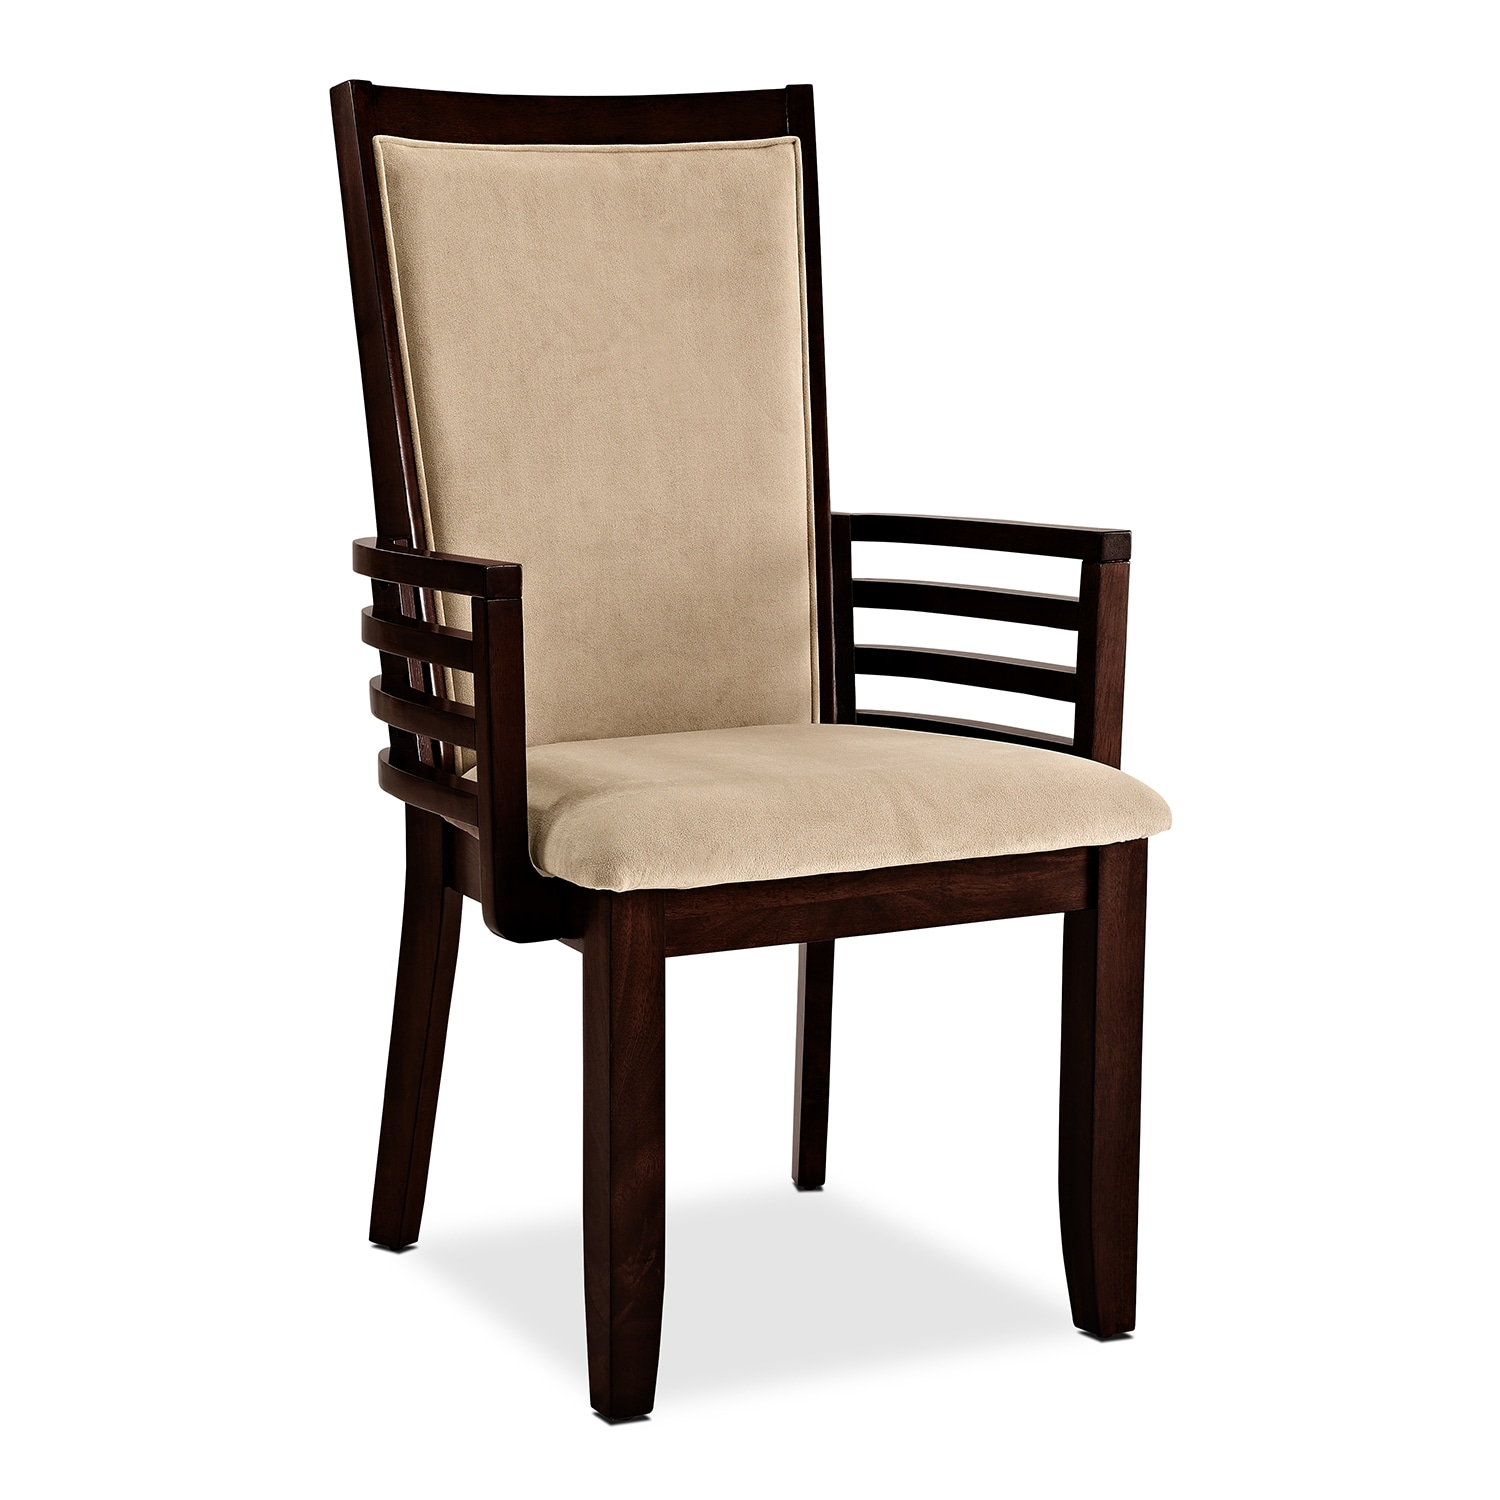 Furnishings for every room online and store furniture for Dining room chairs